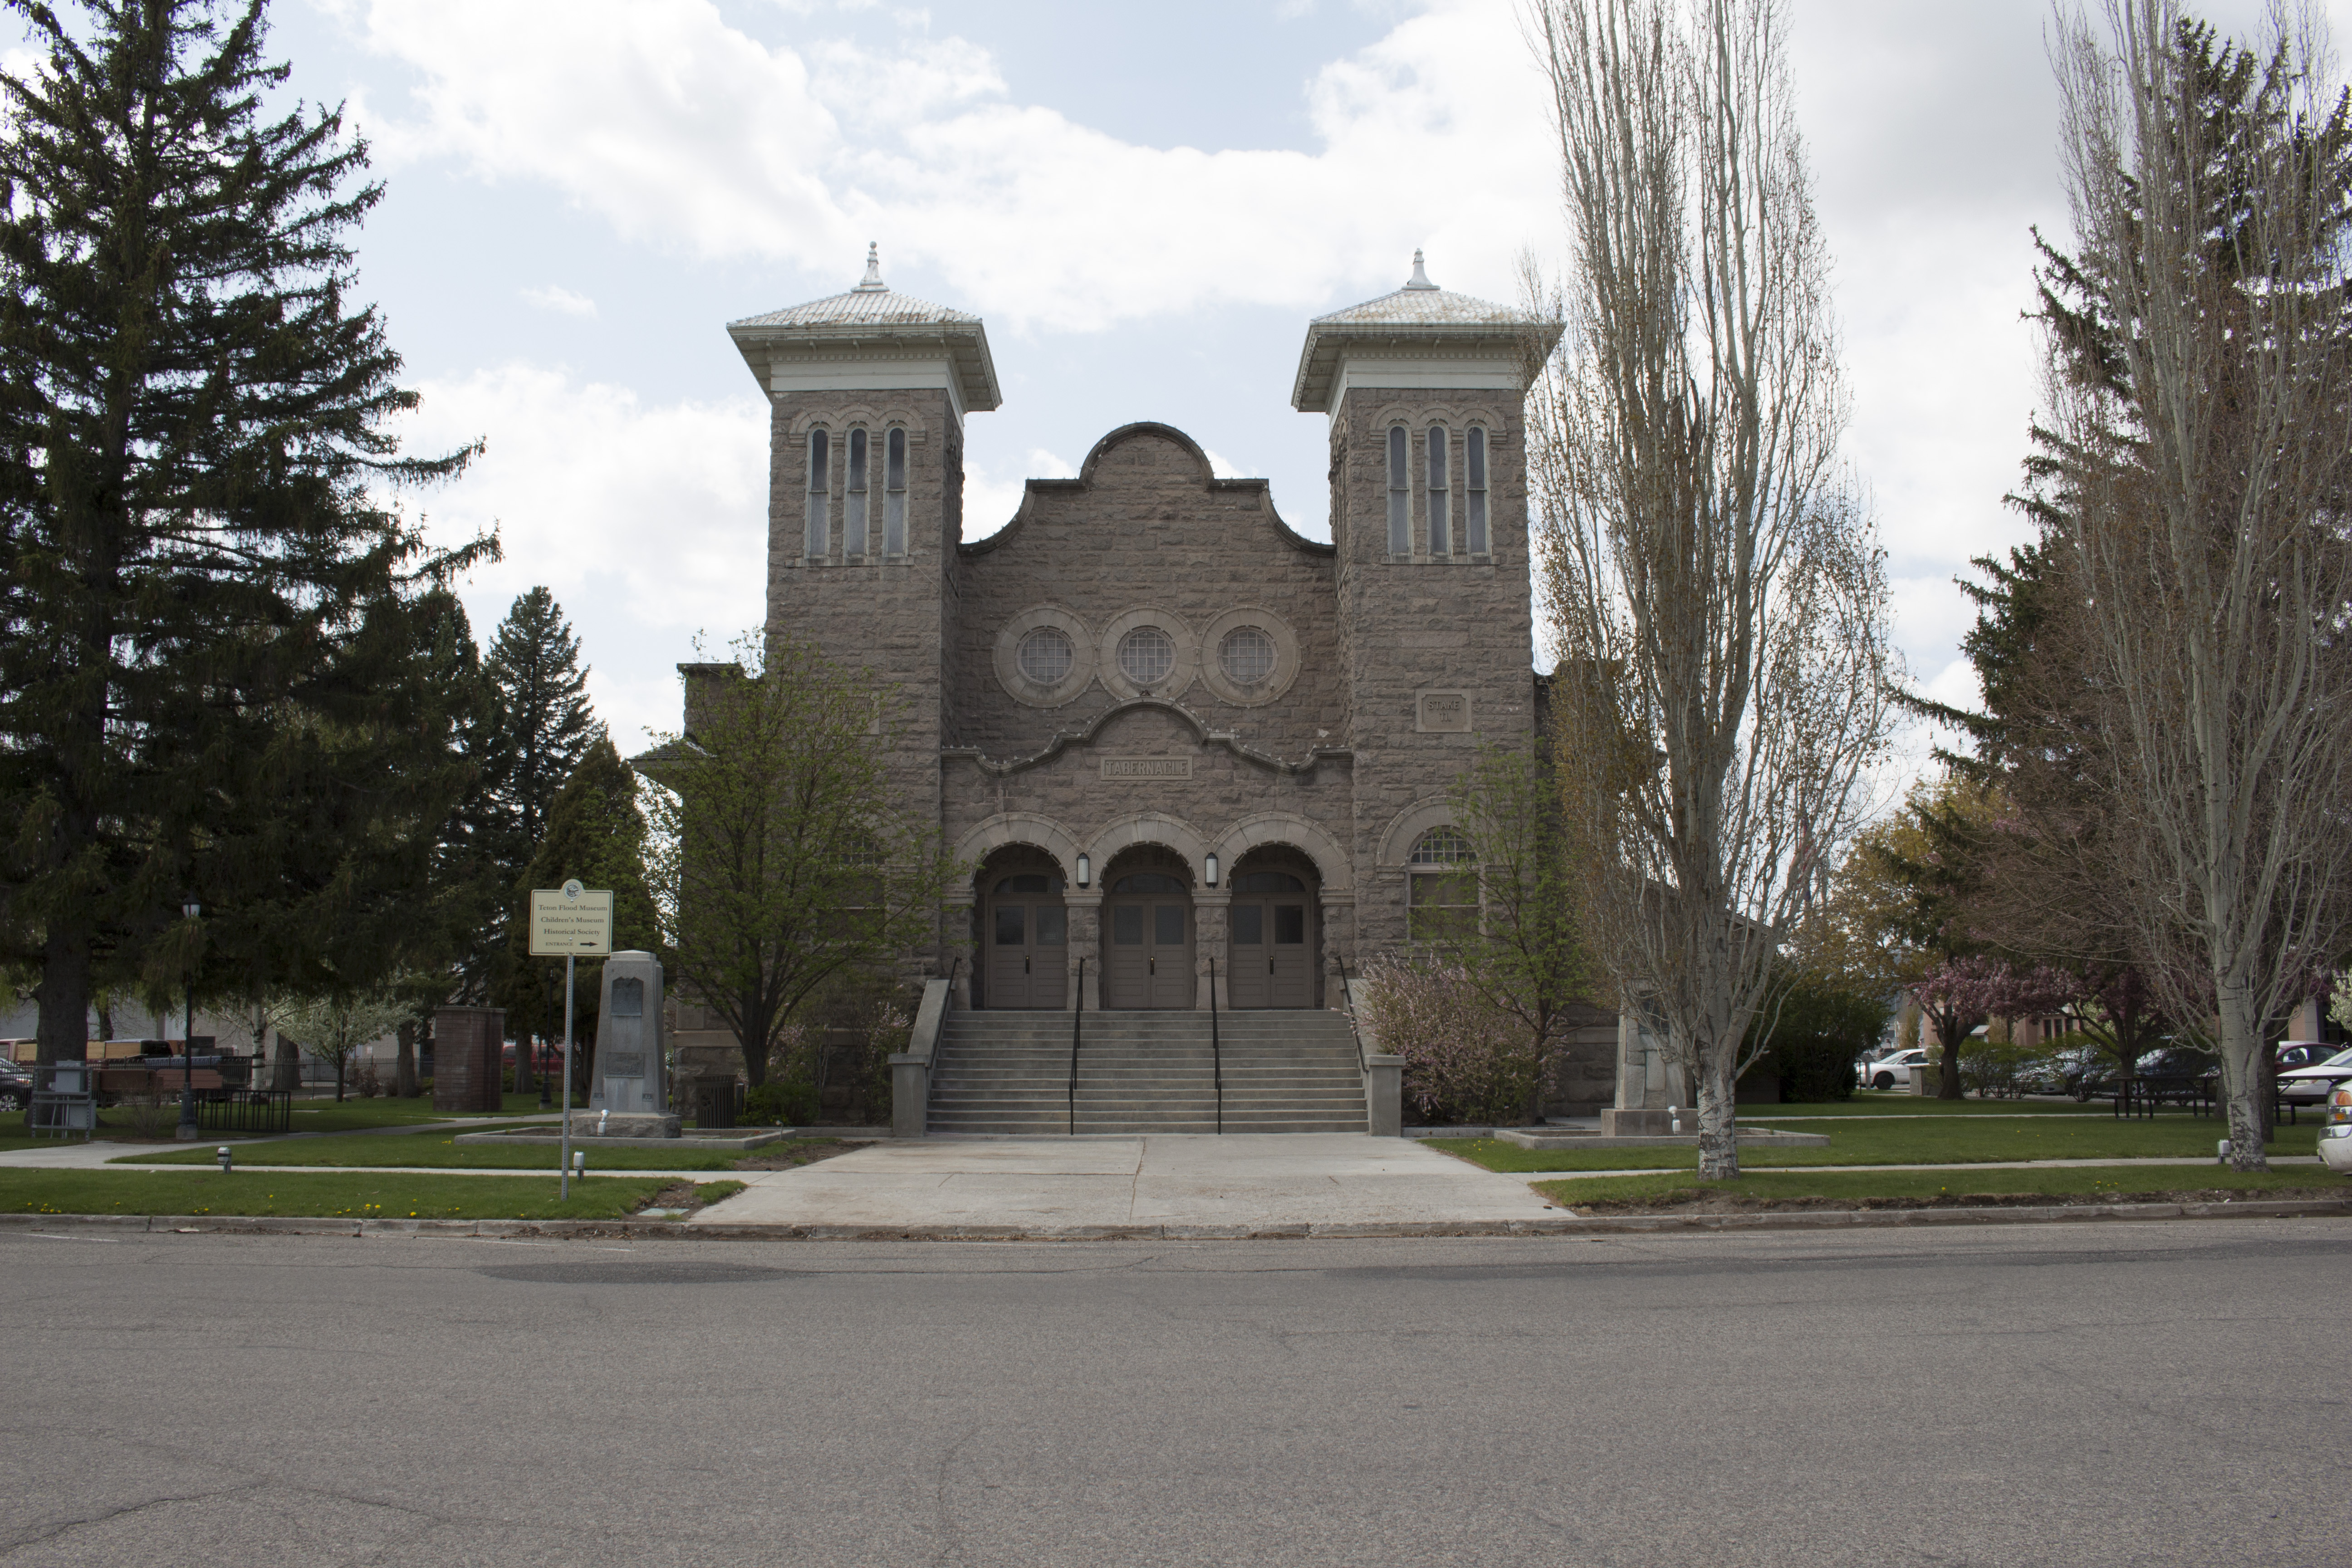 2016 marks 105th anniversary of Rexburg Tabernacle